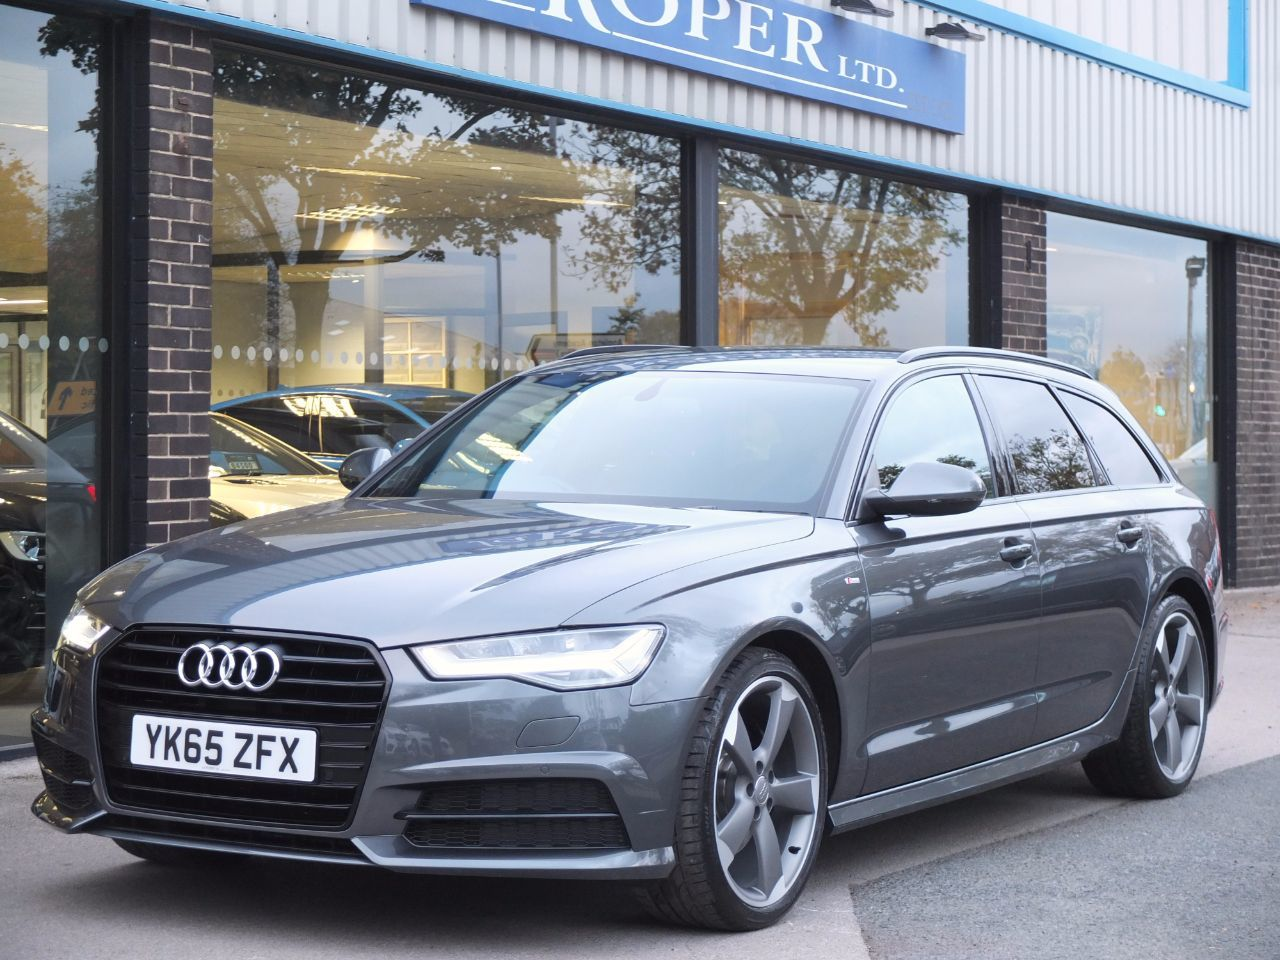 used audi a6 avant 2 0 tdi ultra black edition s tronic 190ps for sale in bradford west. Black Bedroom Furniture Sets. Home Design Ideas